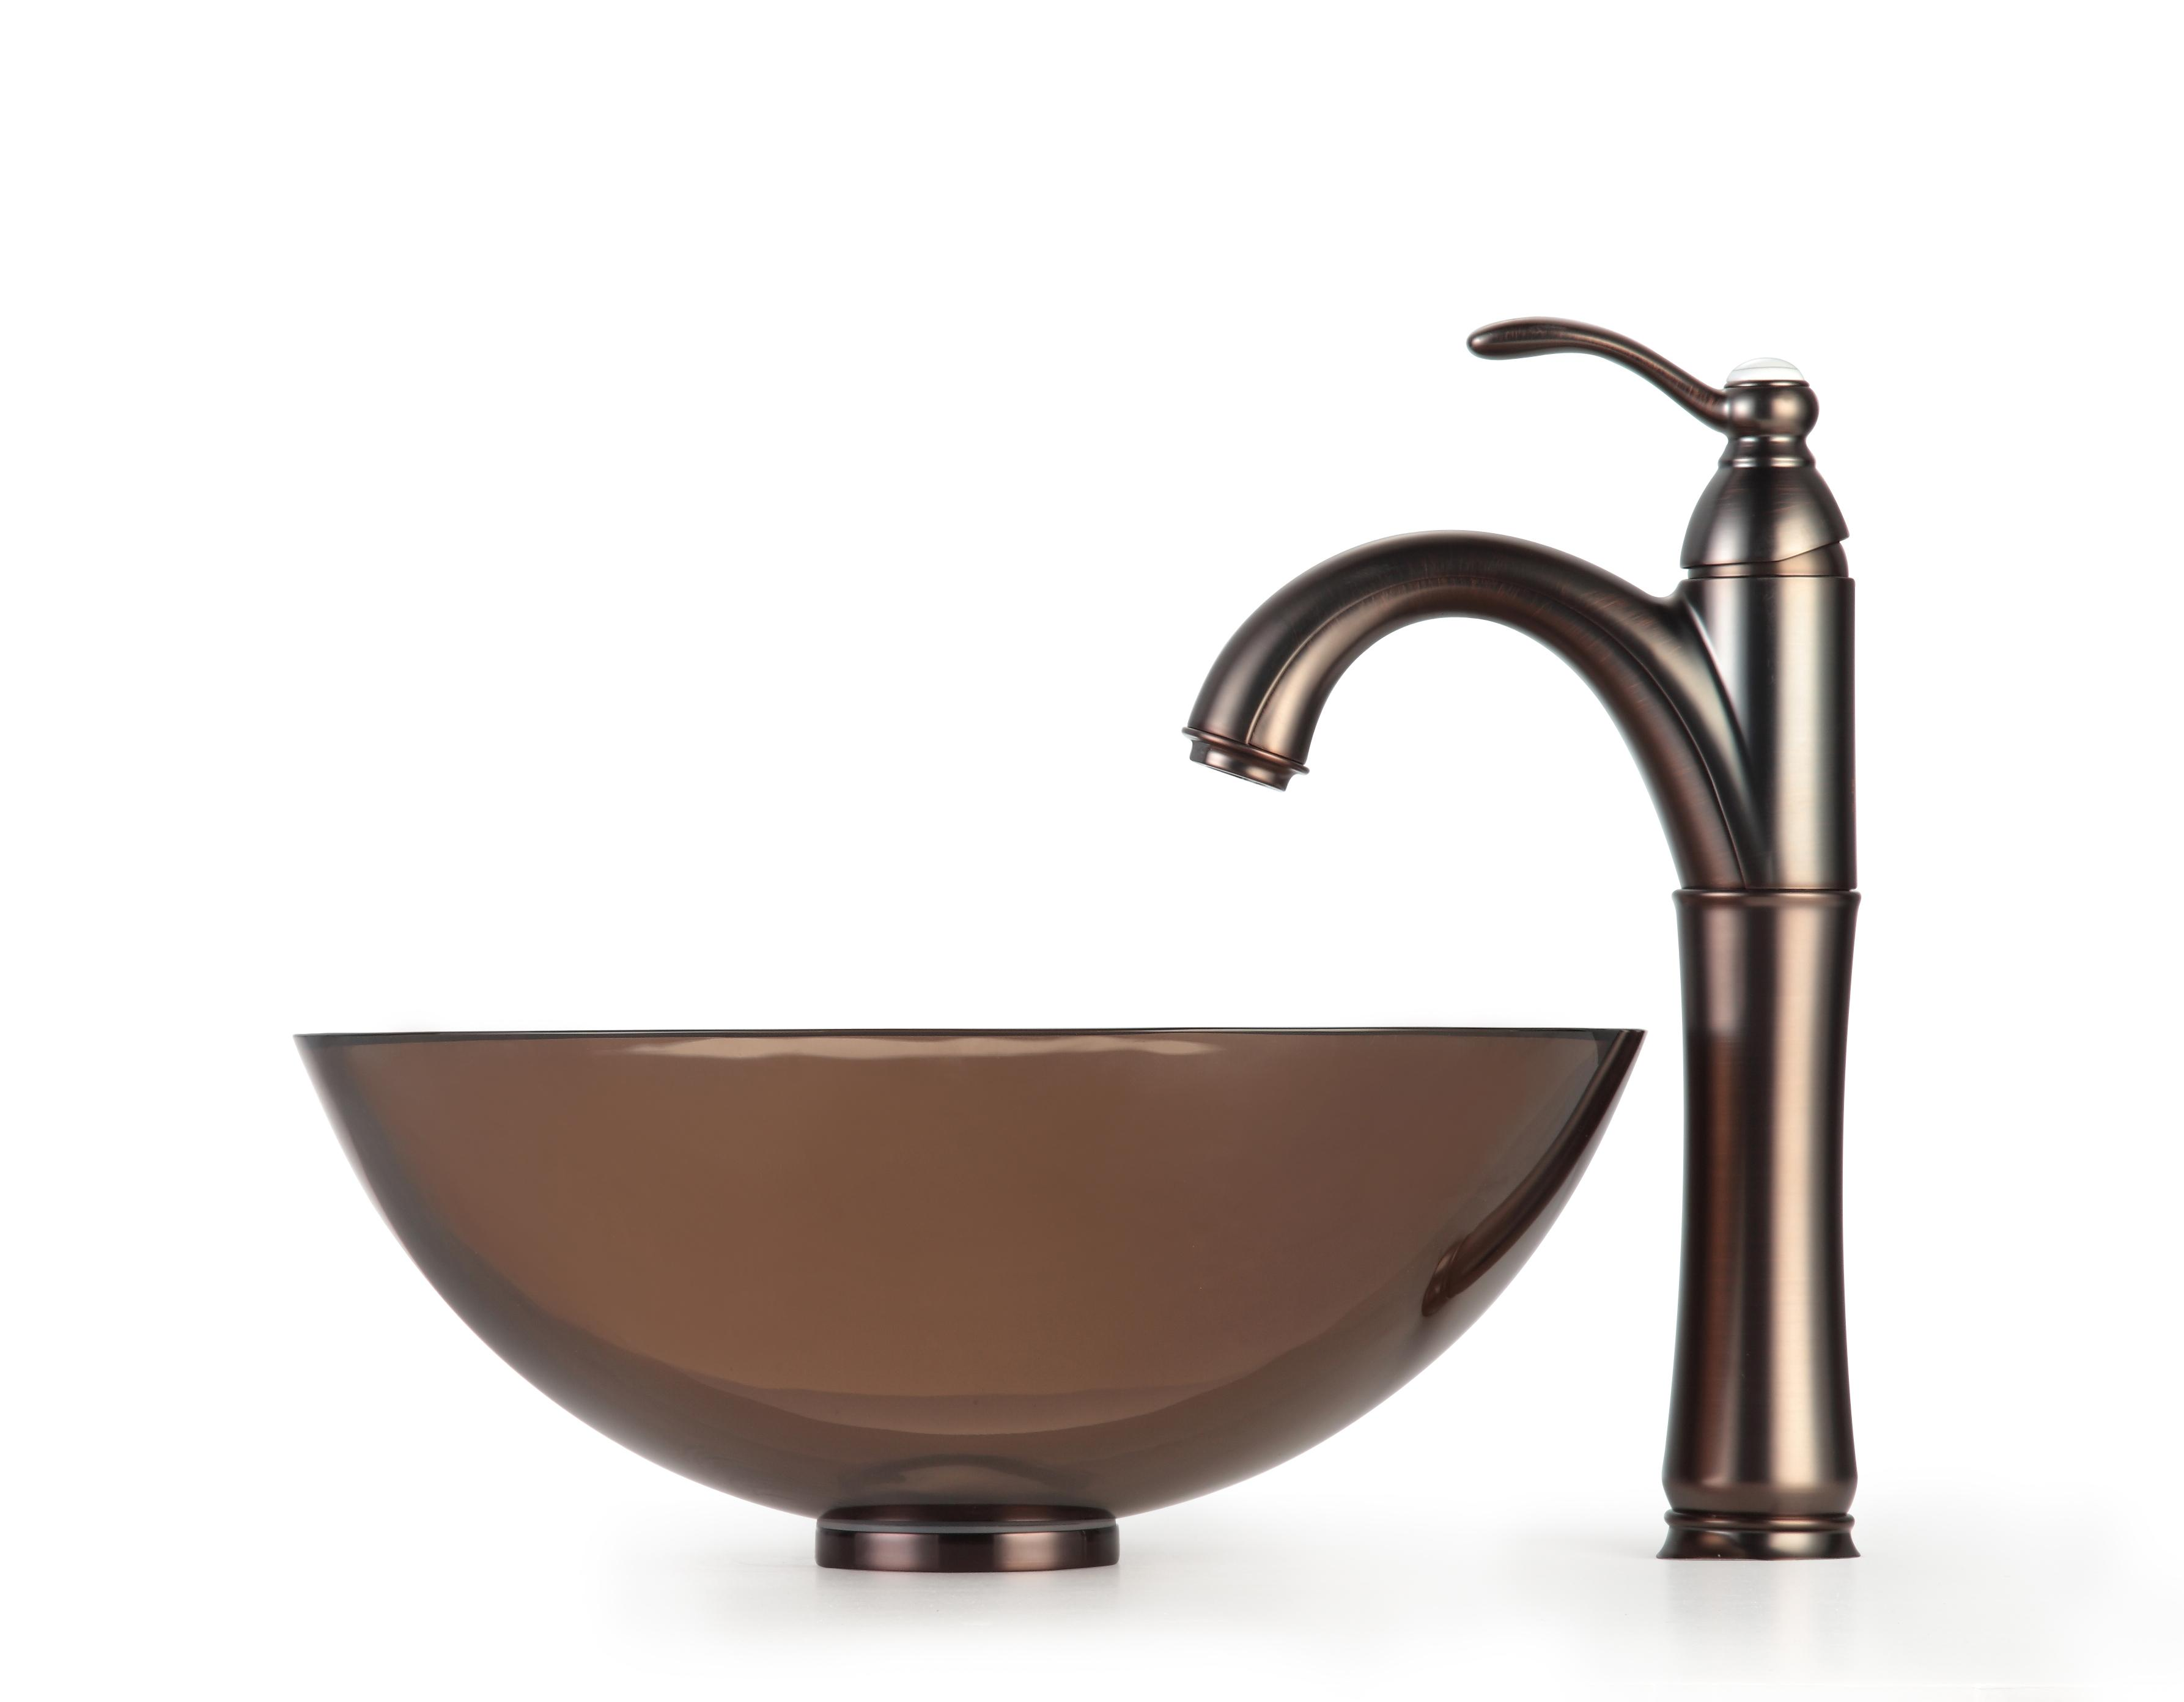 Kraus Brown Clear 14-inch Glass Sink and Rivera Bathroom Faucet